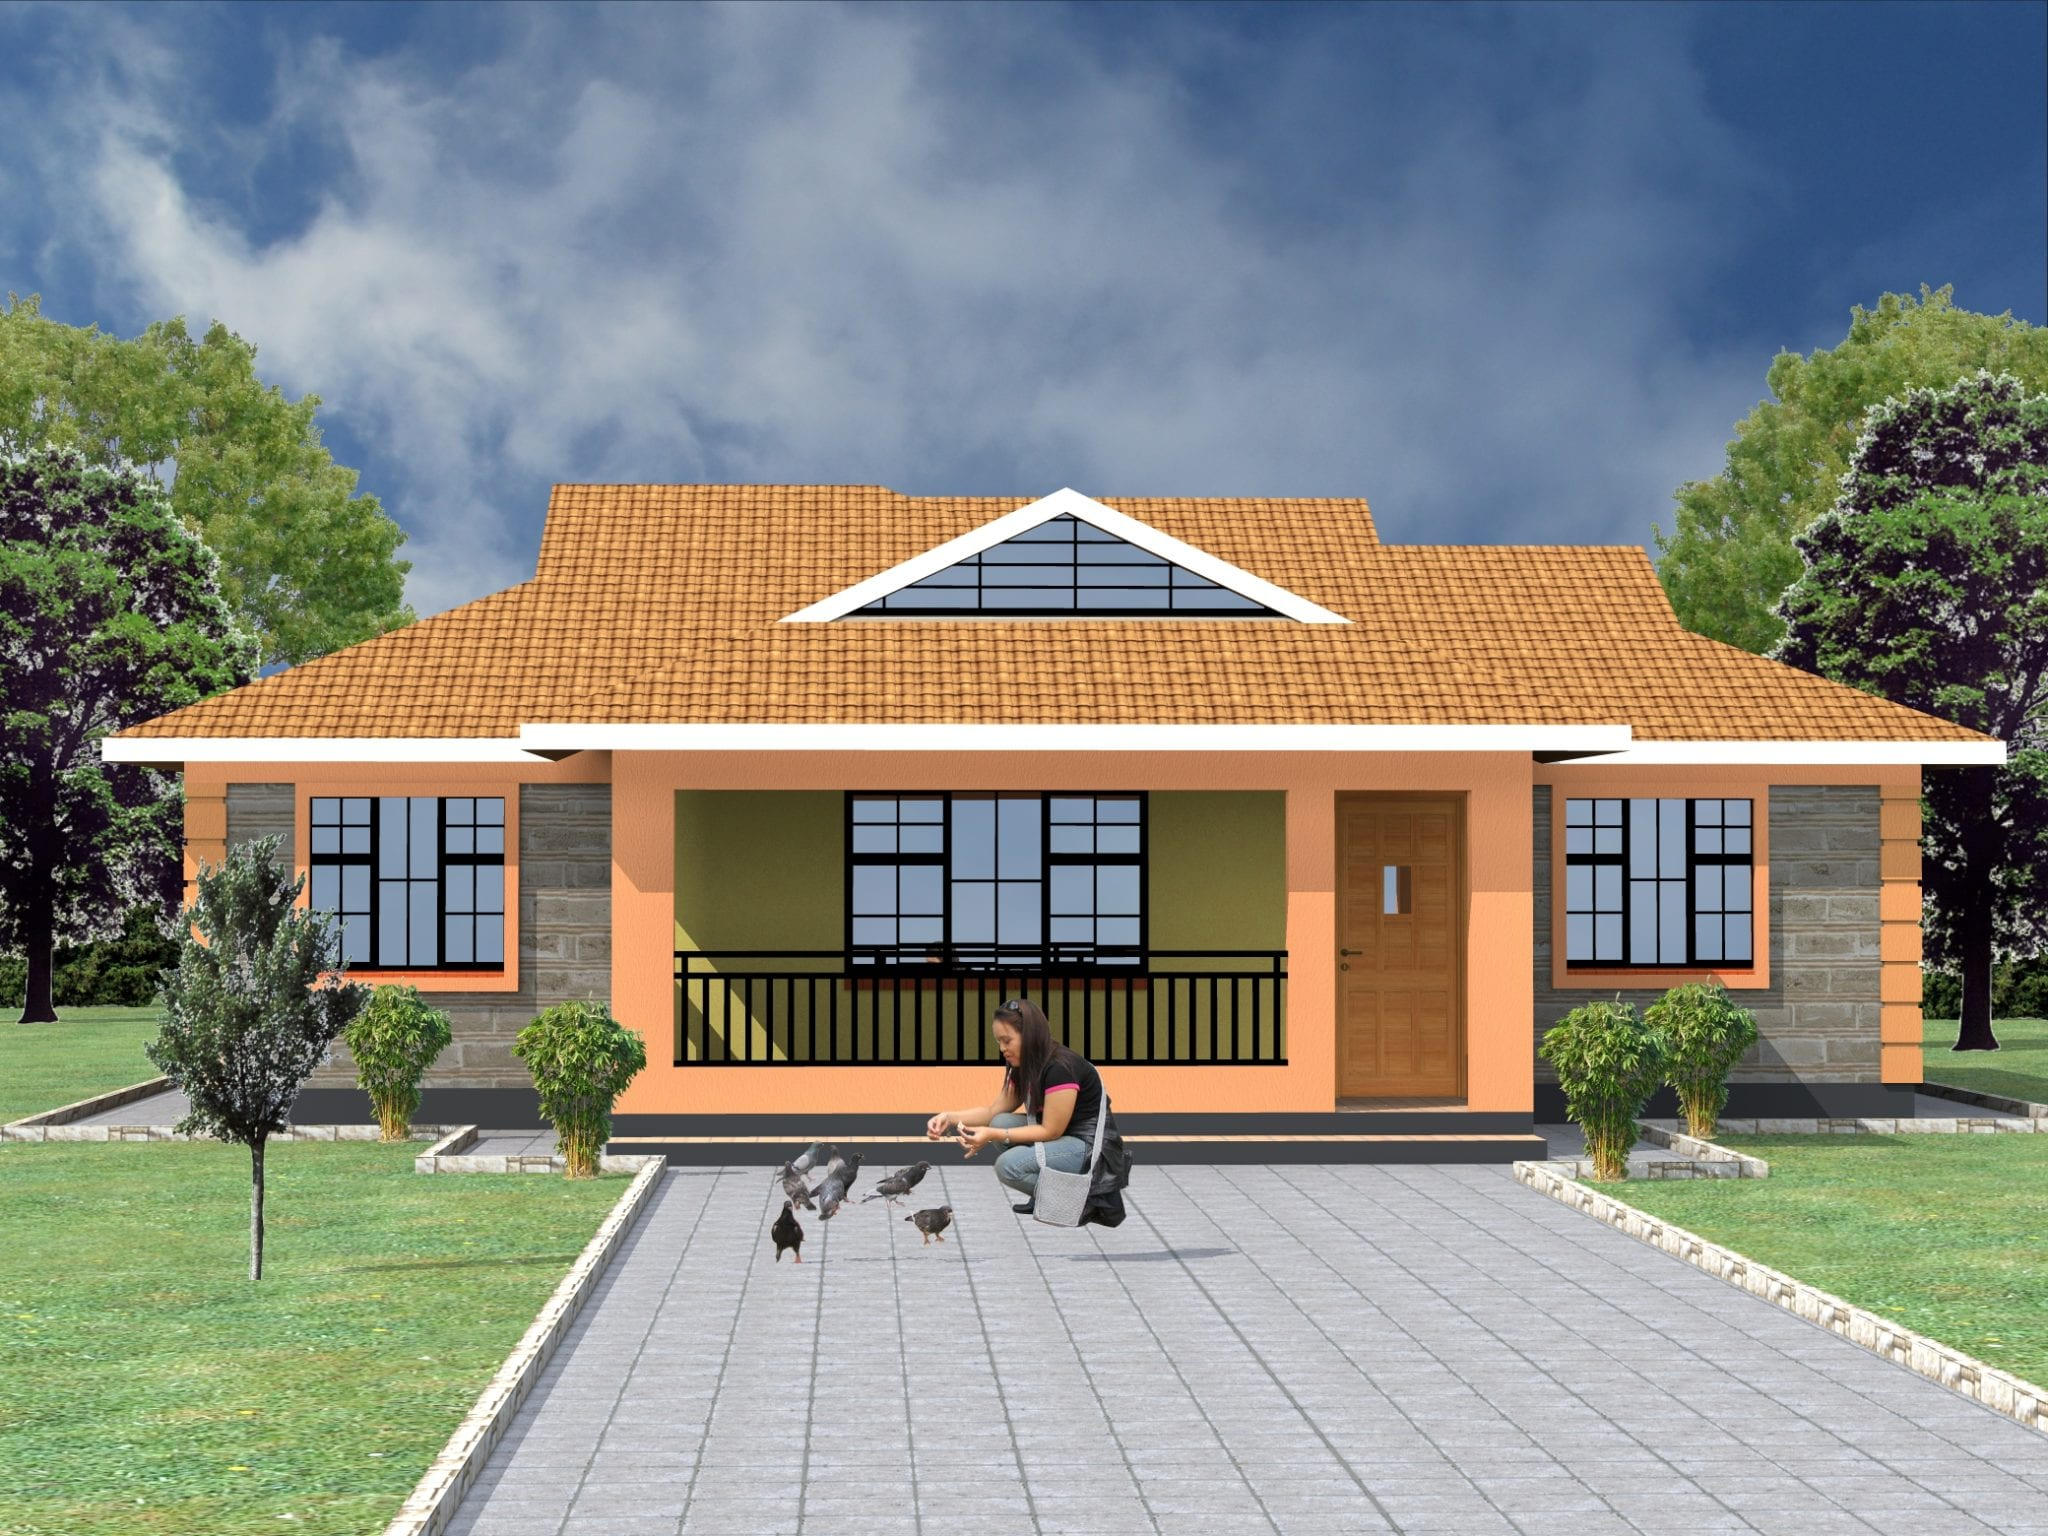 simple 3 bedroom house plans in kenya |HPD Consult